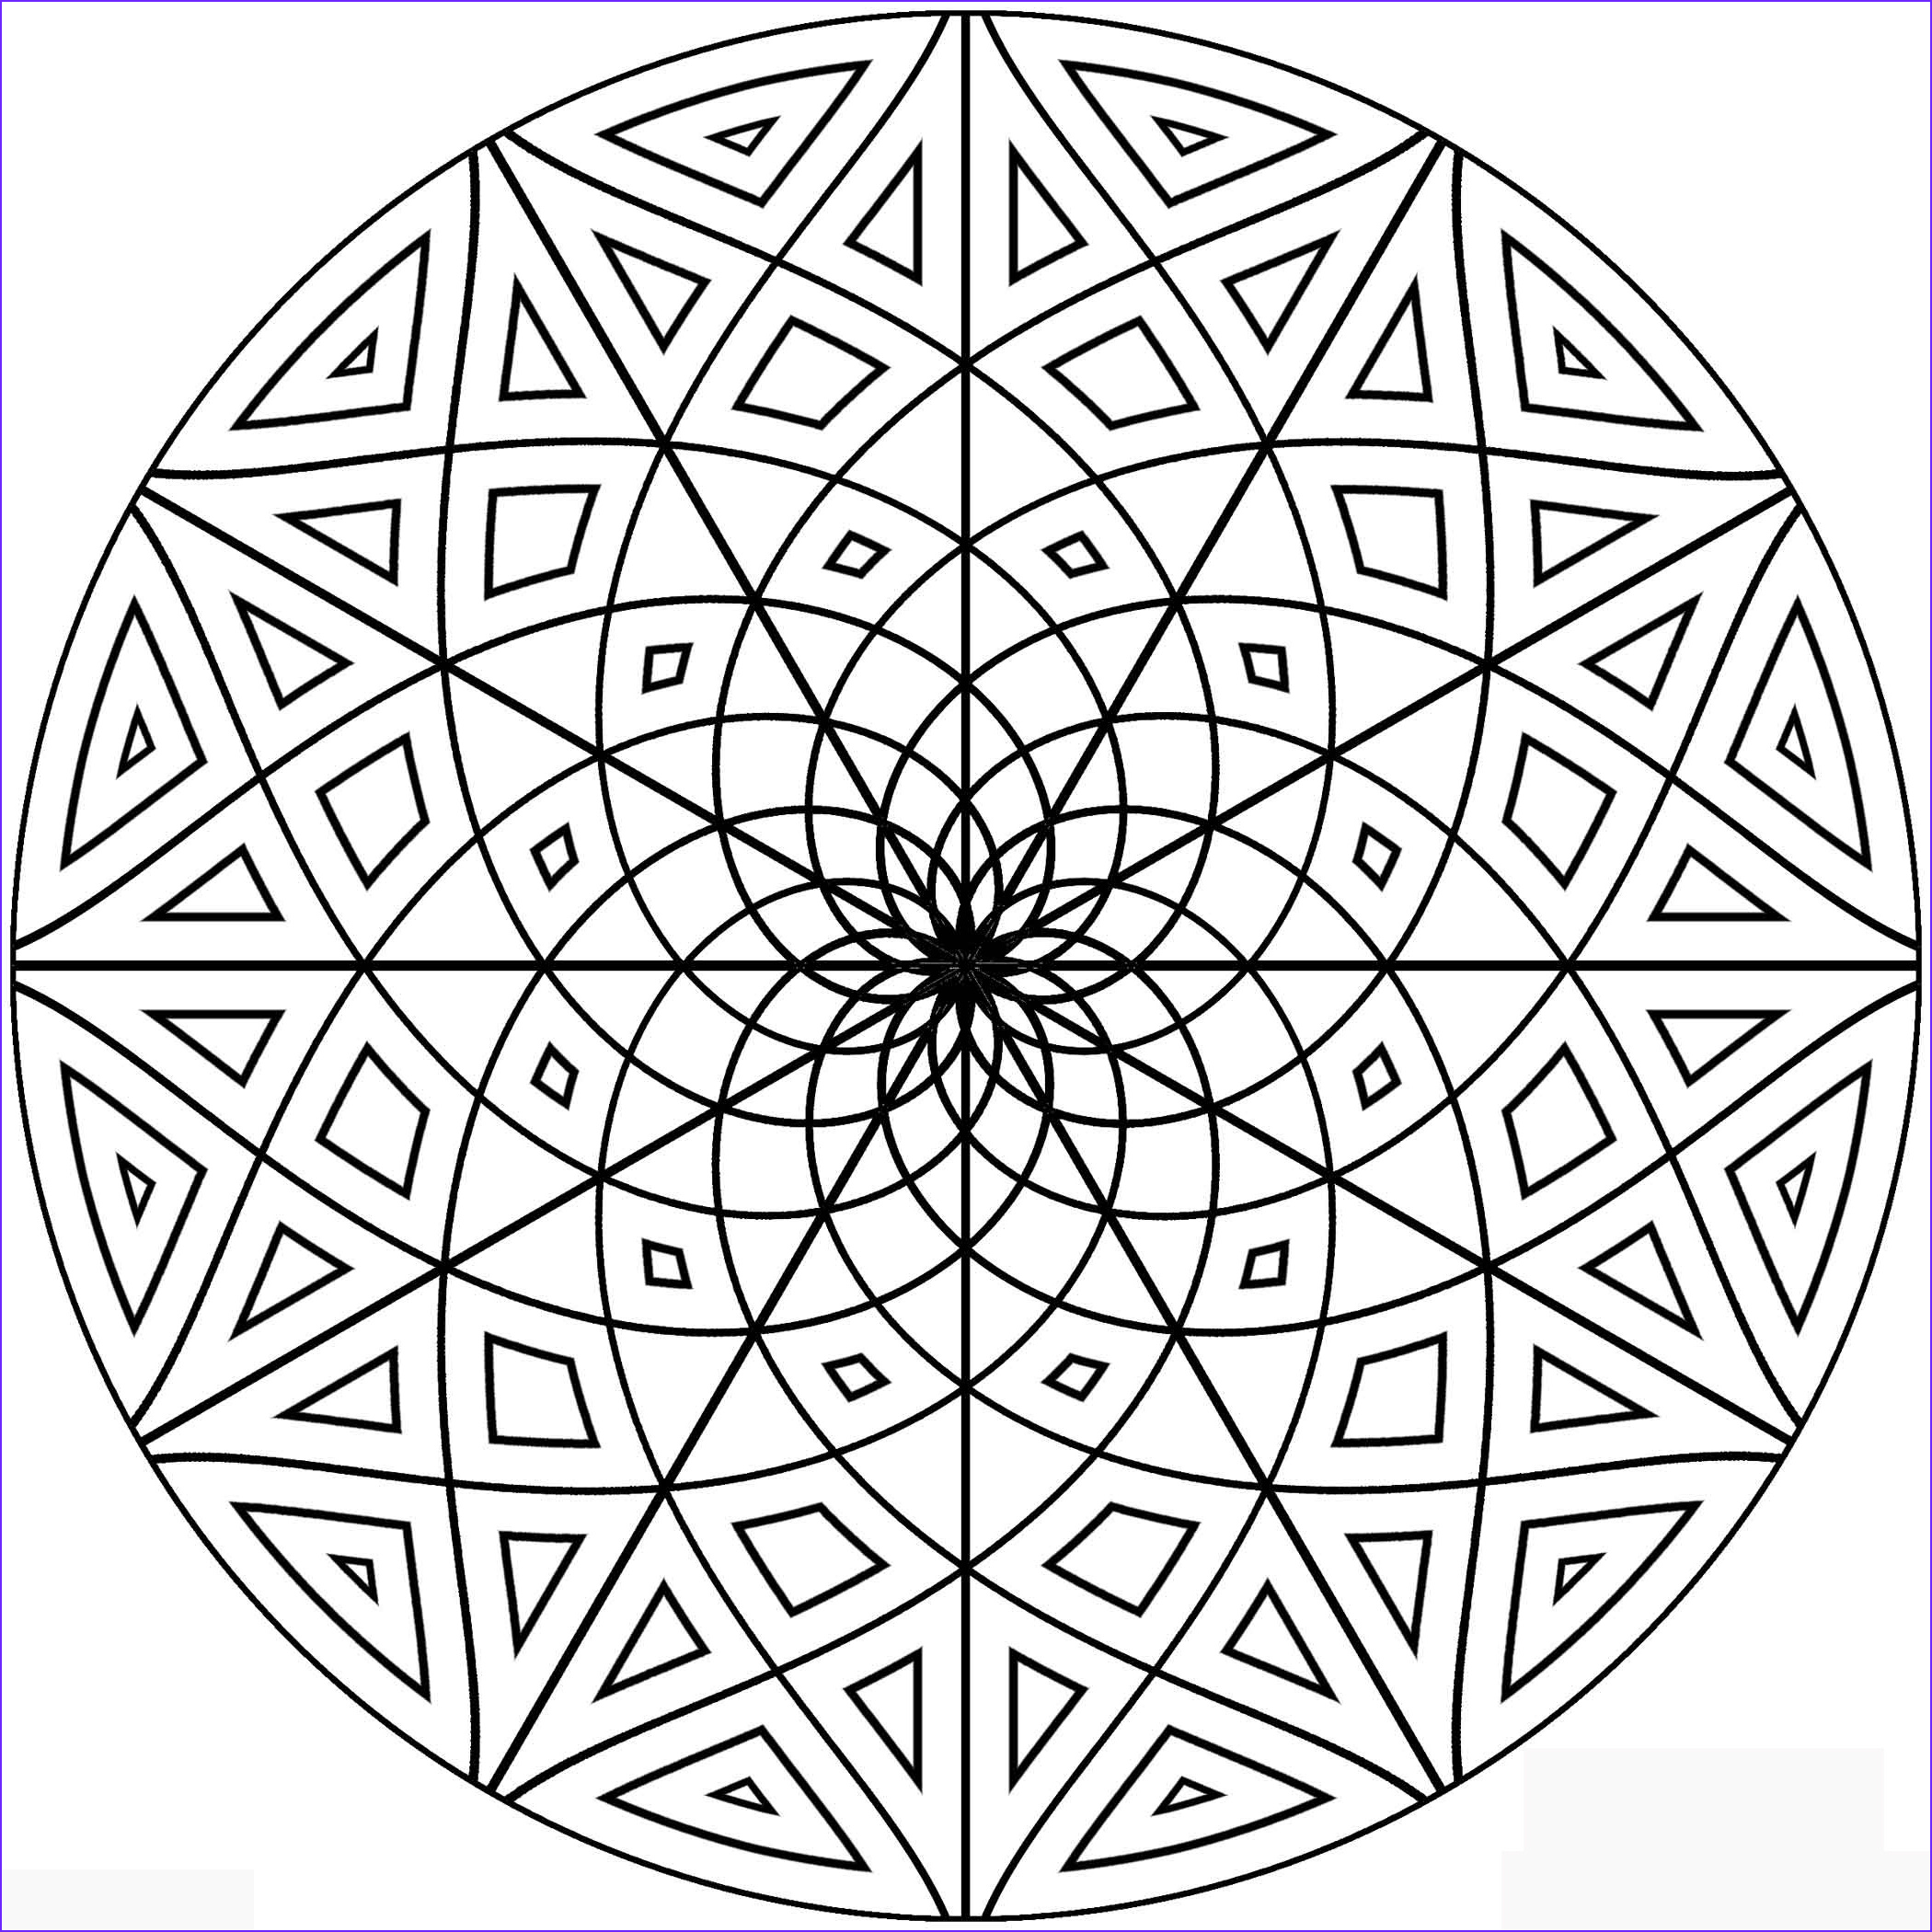 Pattern Coloring Books for Adults Elegant Stock Free Printable Geometric Coloring Pages for Adults